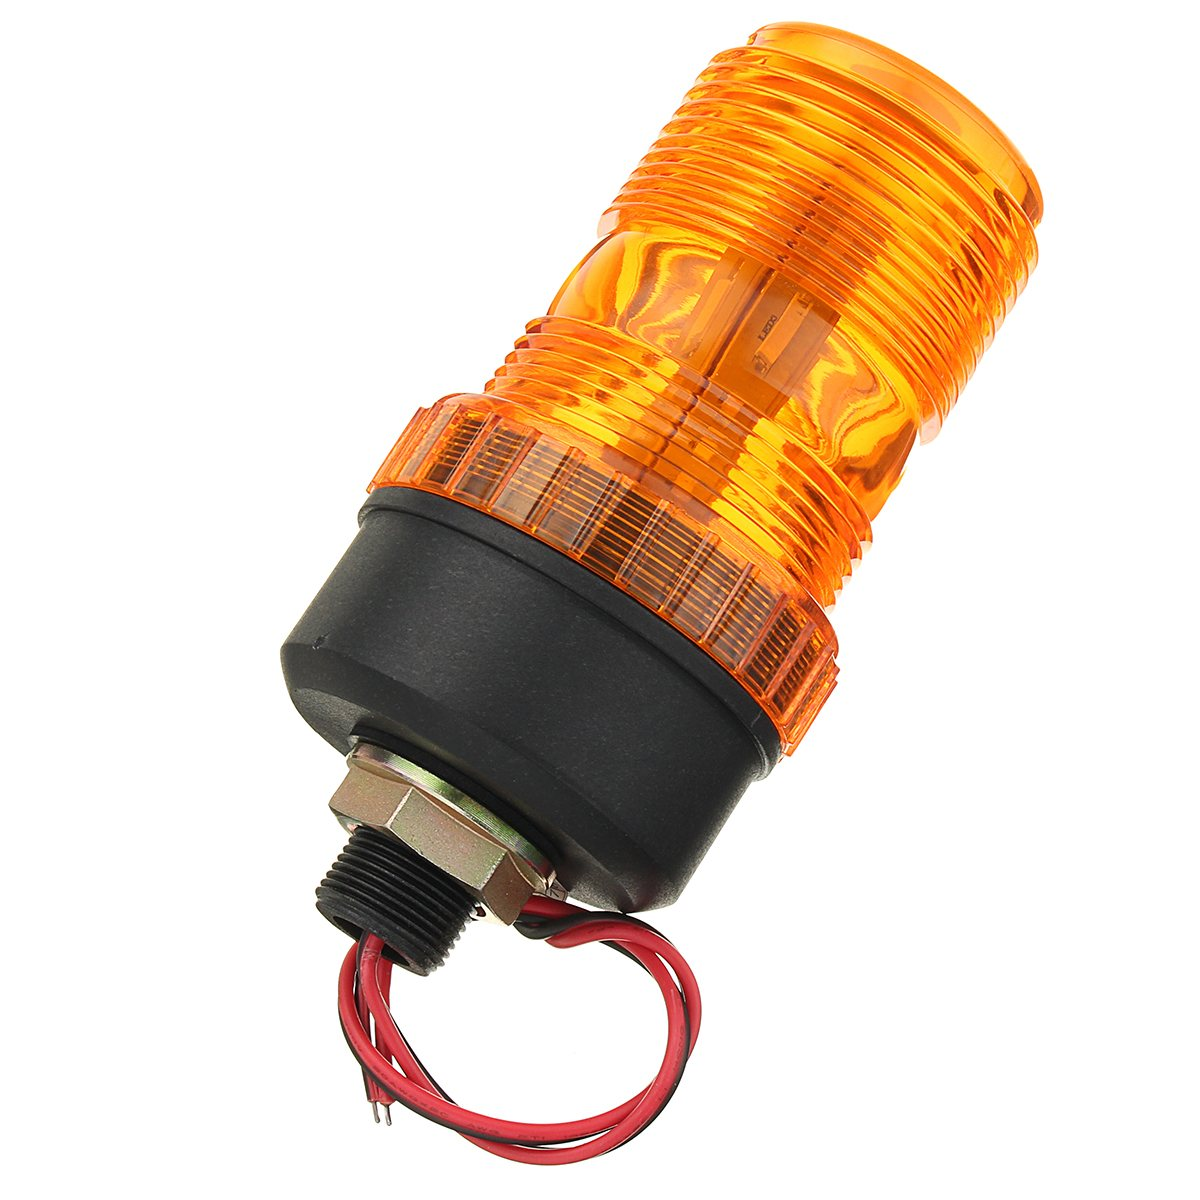 все цены на NEW Safurance LED Rotating Flashing Amber Beacon Flexible Strobe Tractor Warning Light 12v 24v Traffic Light Roadway Safety онлайн